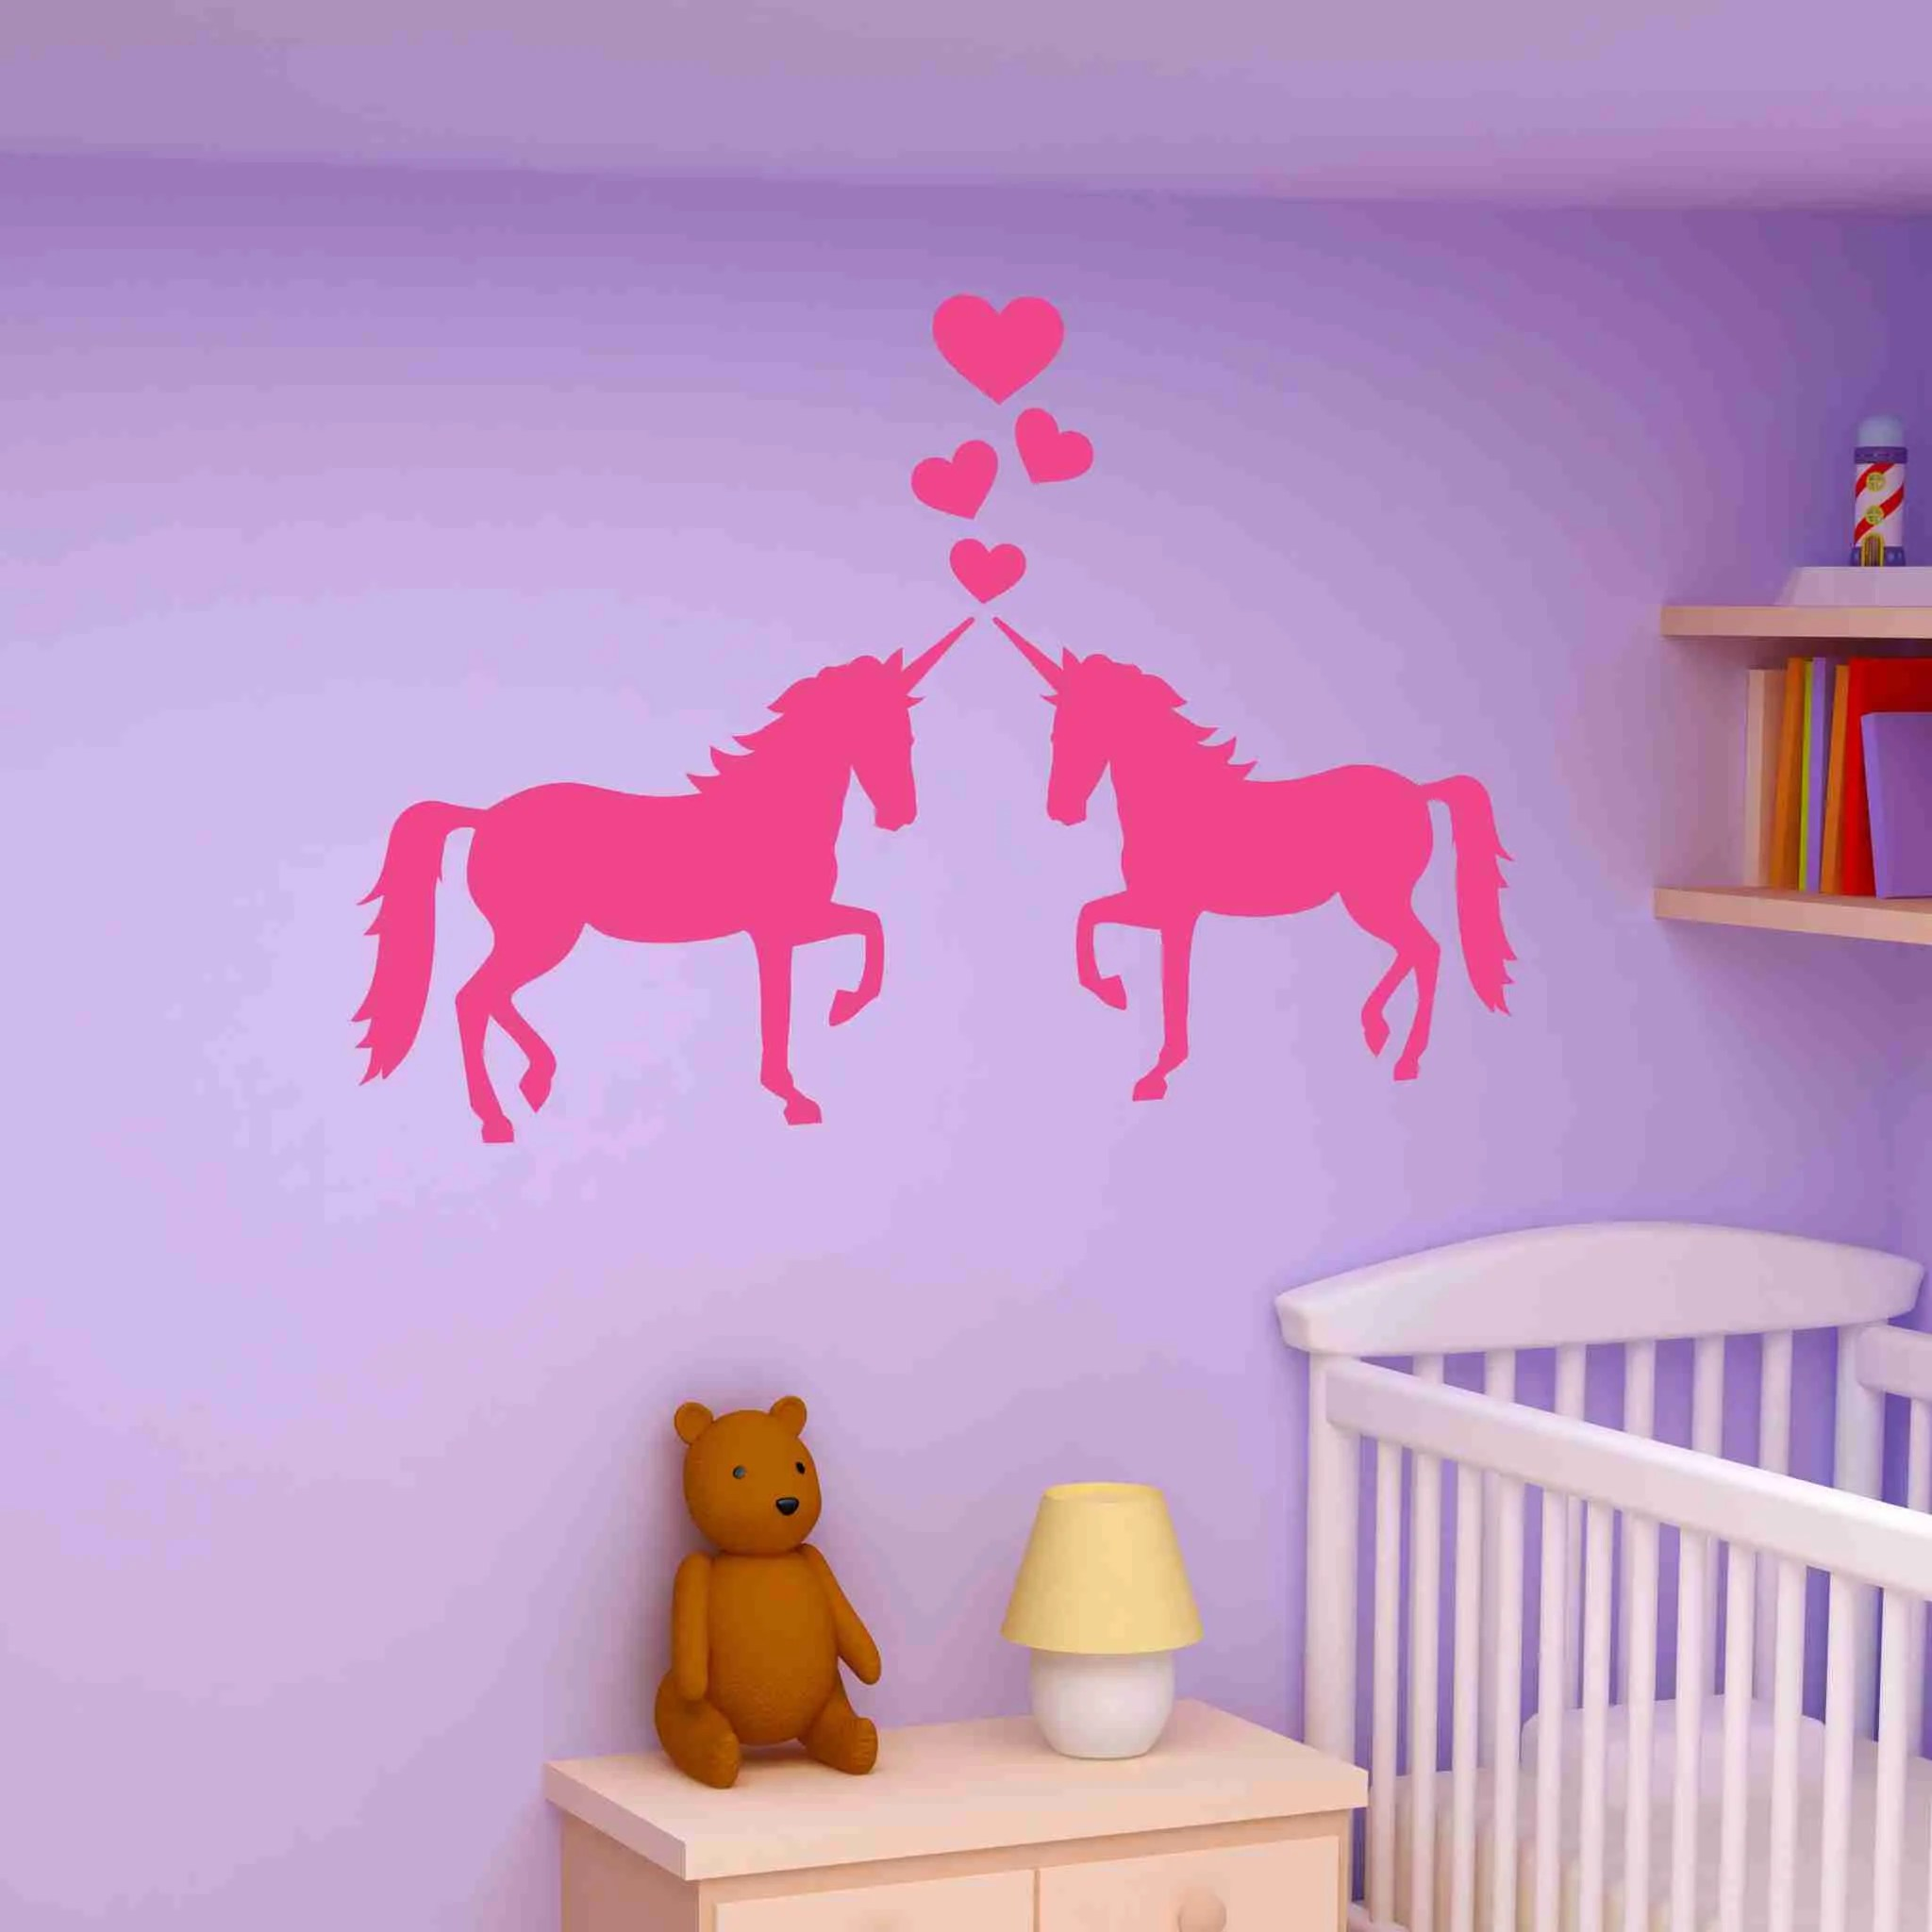 Lovely Love Wall Decal Room Vinyl Wall Nurserywall Decor Unicorns Love Wall Decal Room Vinyl Wall Art Nursery Wall Art Seahorse Nursery Wall Art Camels Unicorns art Nursery Wall Art